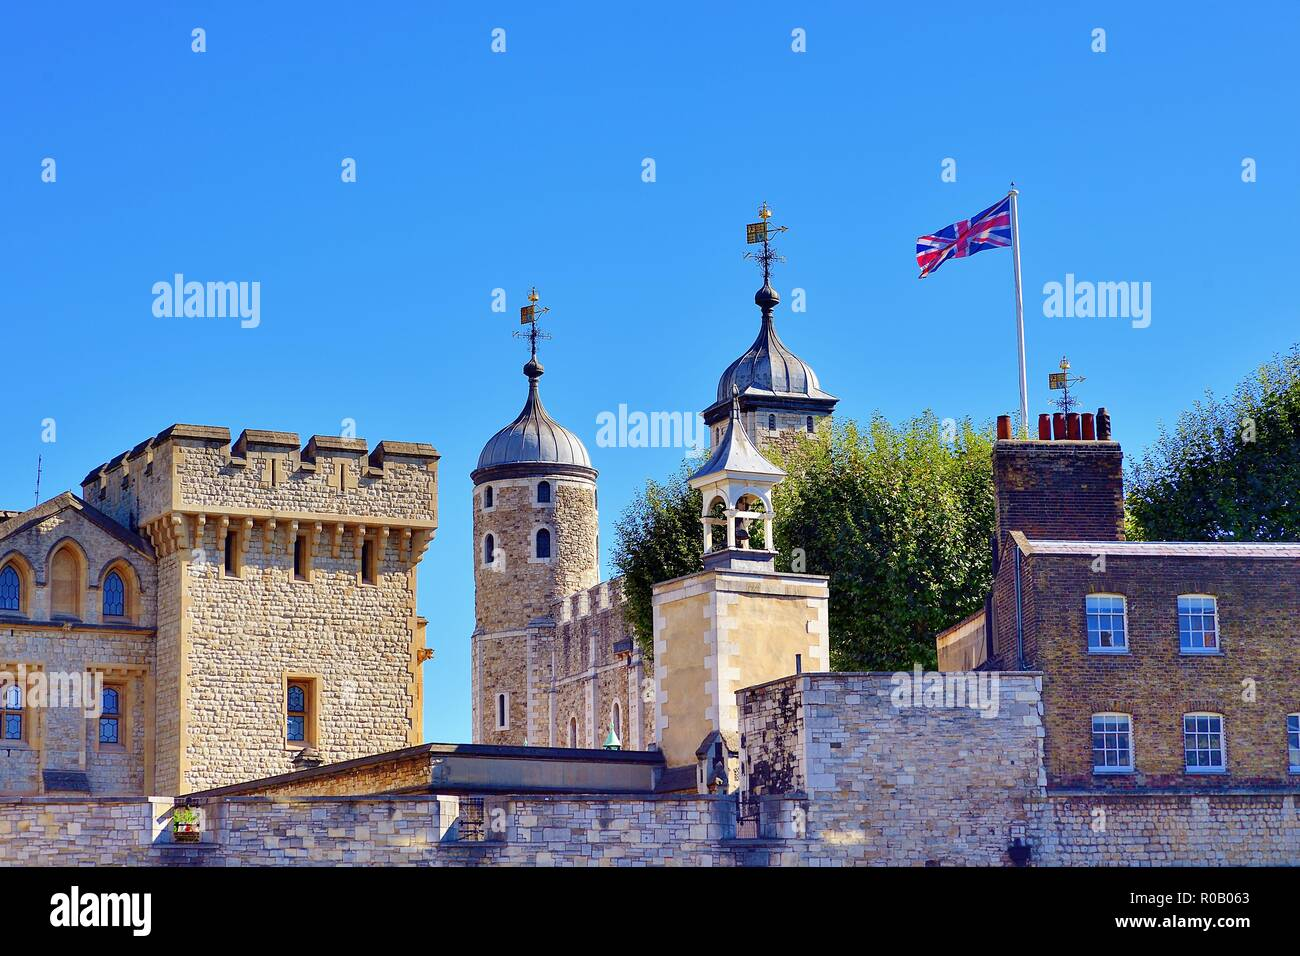 London, England, United Kingdom. White Tower within the Inner Ward of the Tower of London partially obscured by outer region structures. Stock Photo